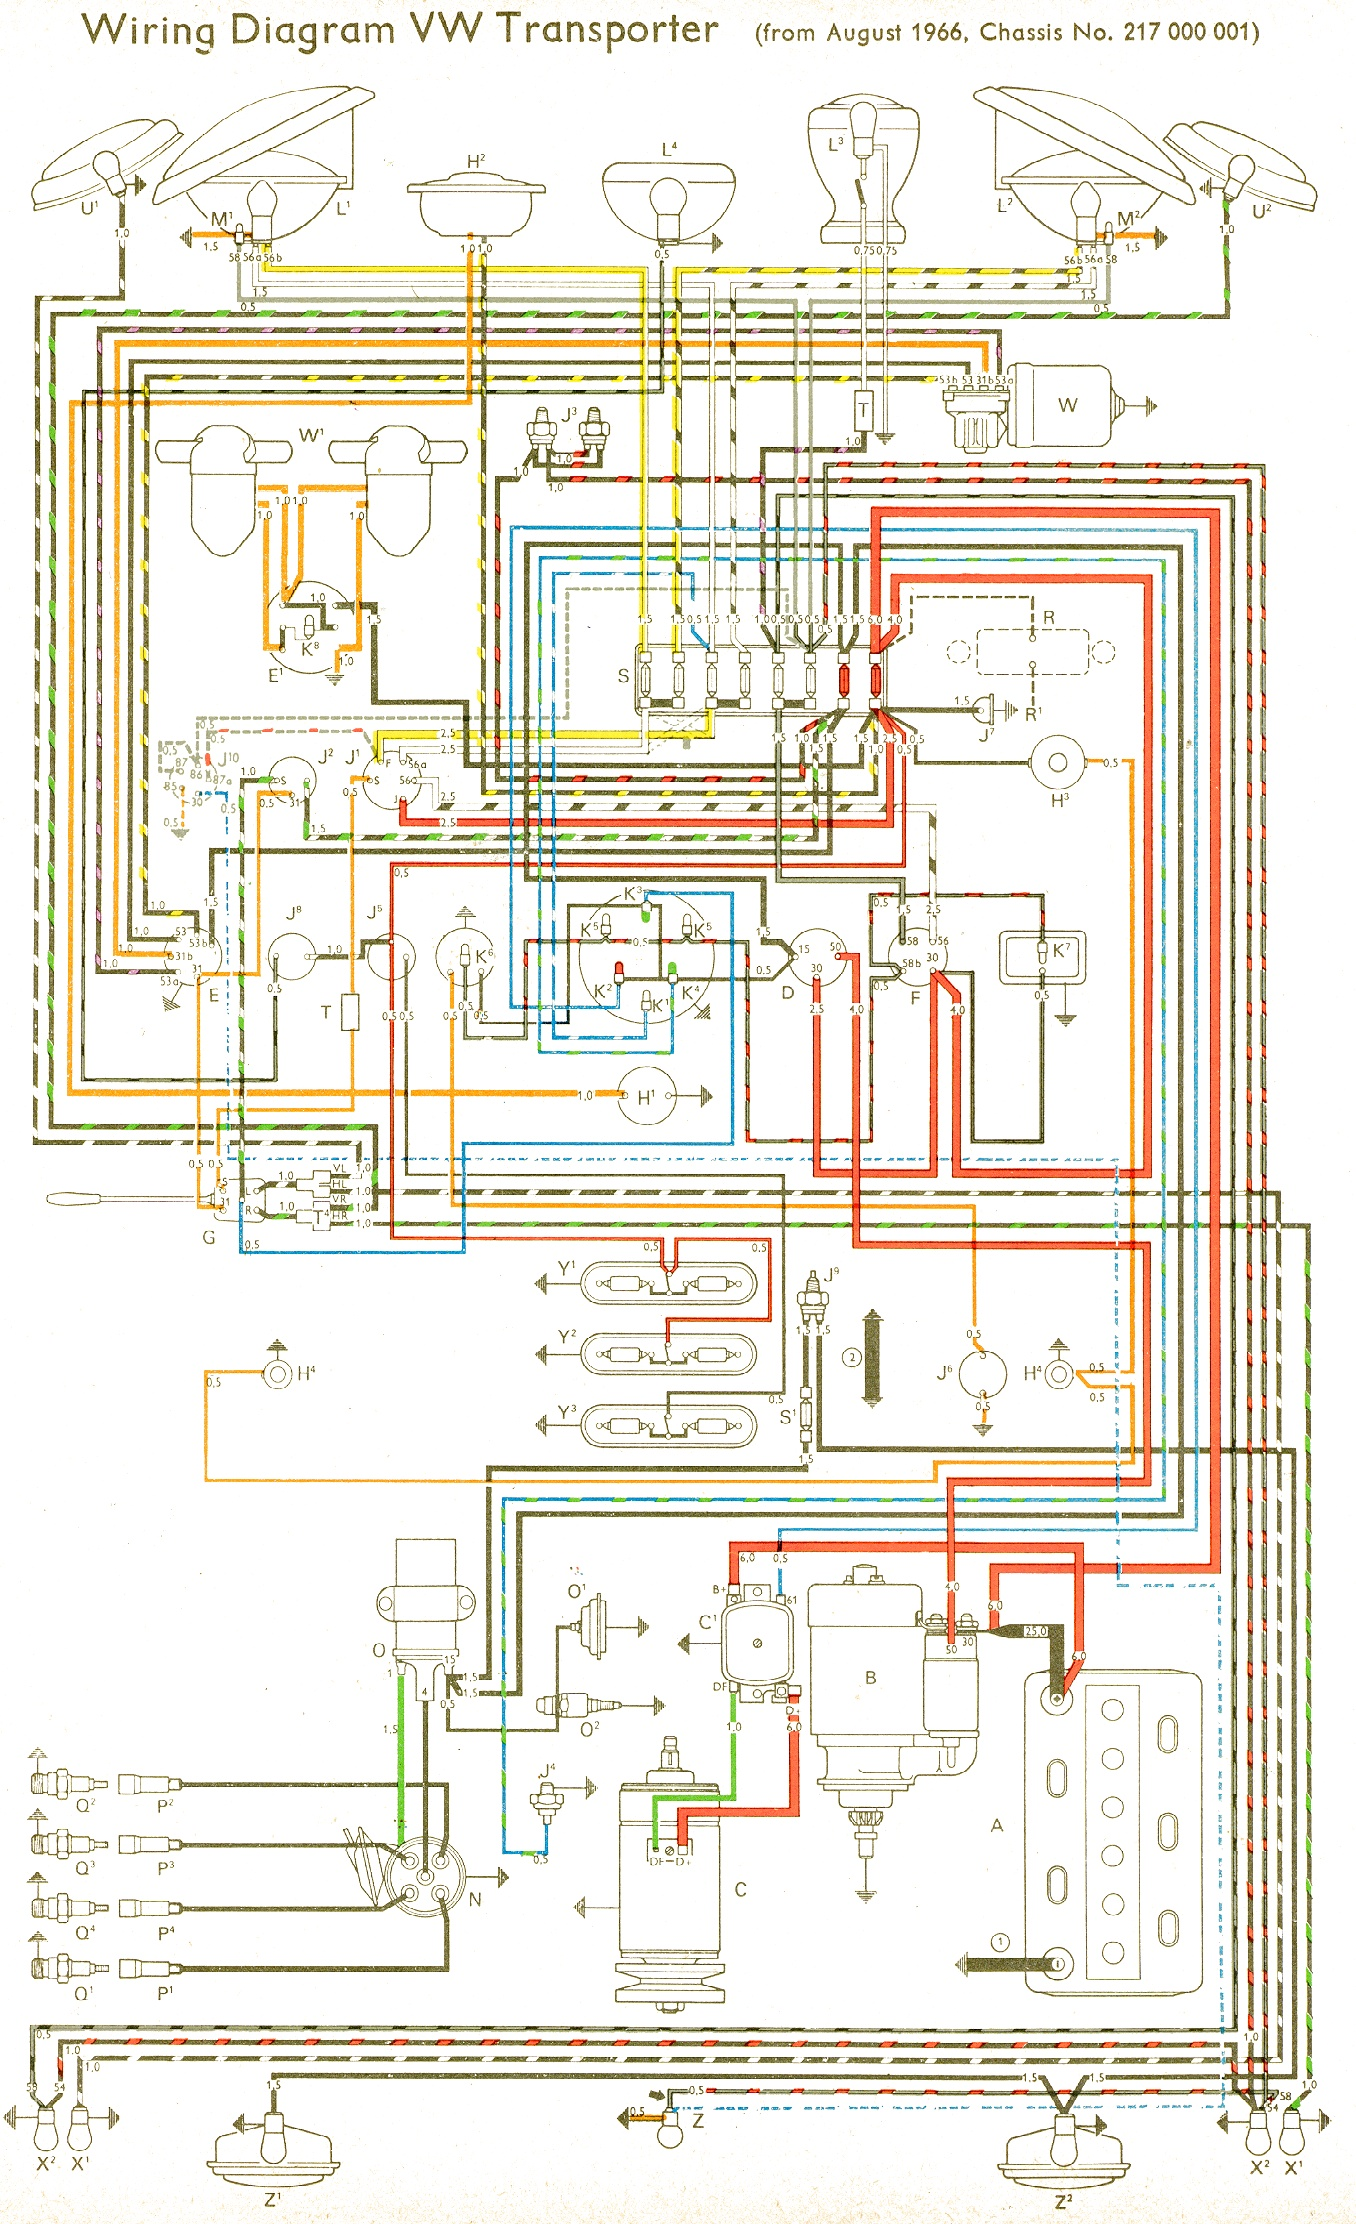 bus 66 bus wiring diagram vw wiring harness diagram \u2022 wiring diagrams j 1971 vw bus wiring diagram at nearapp.co